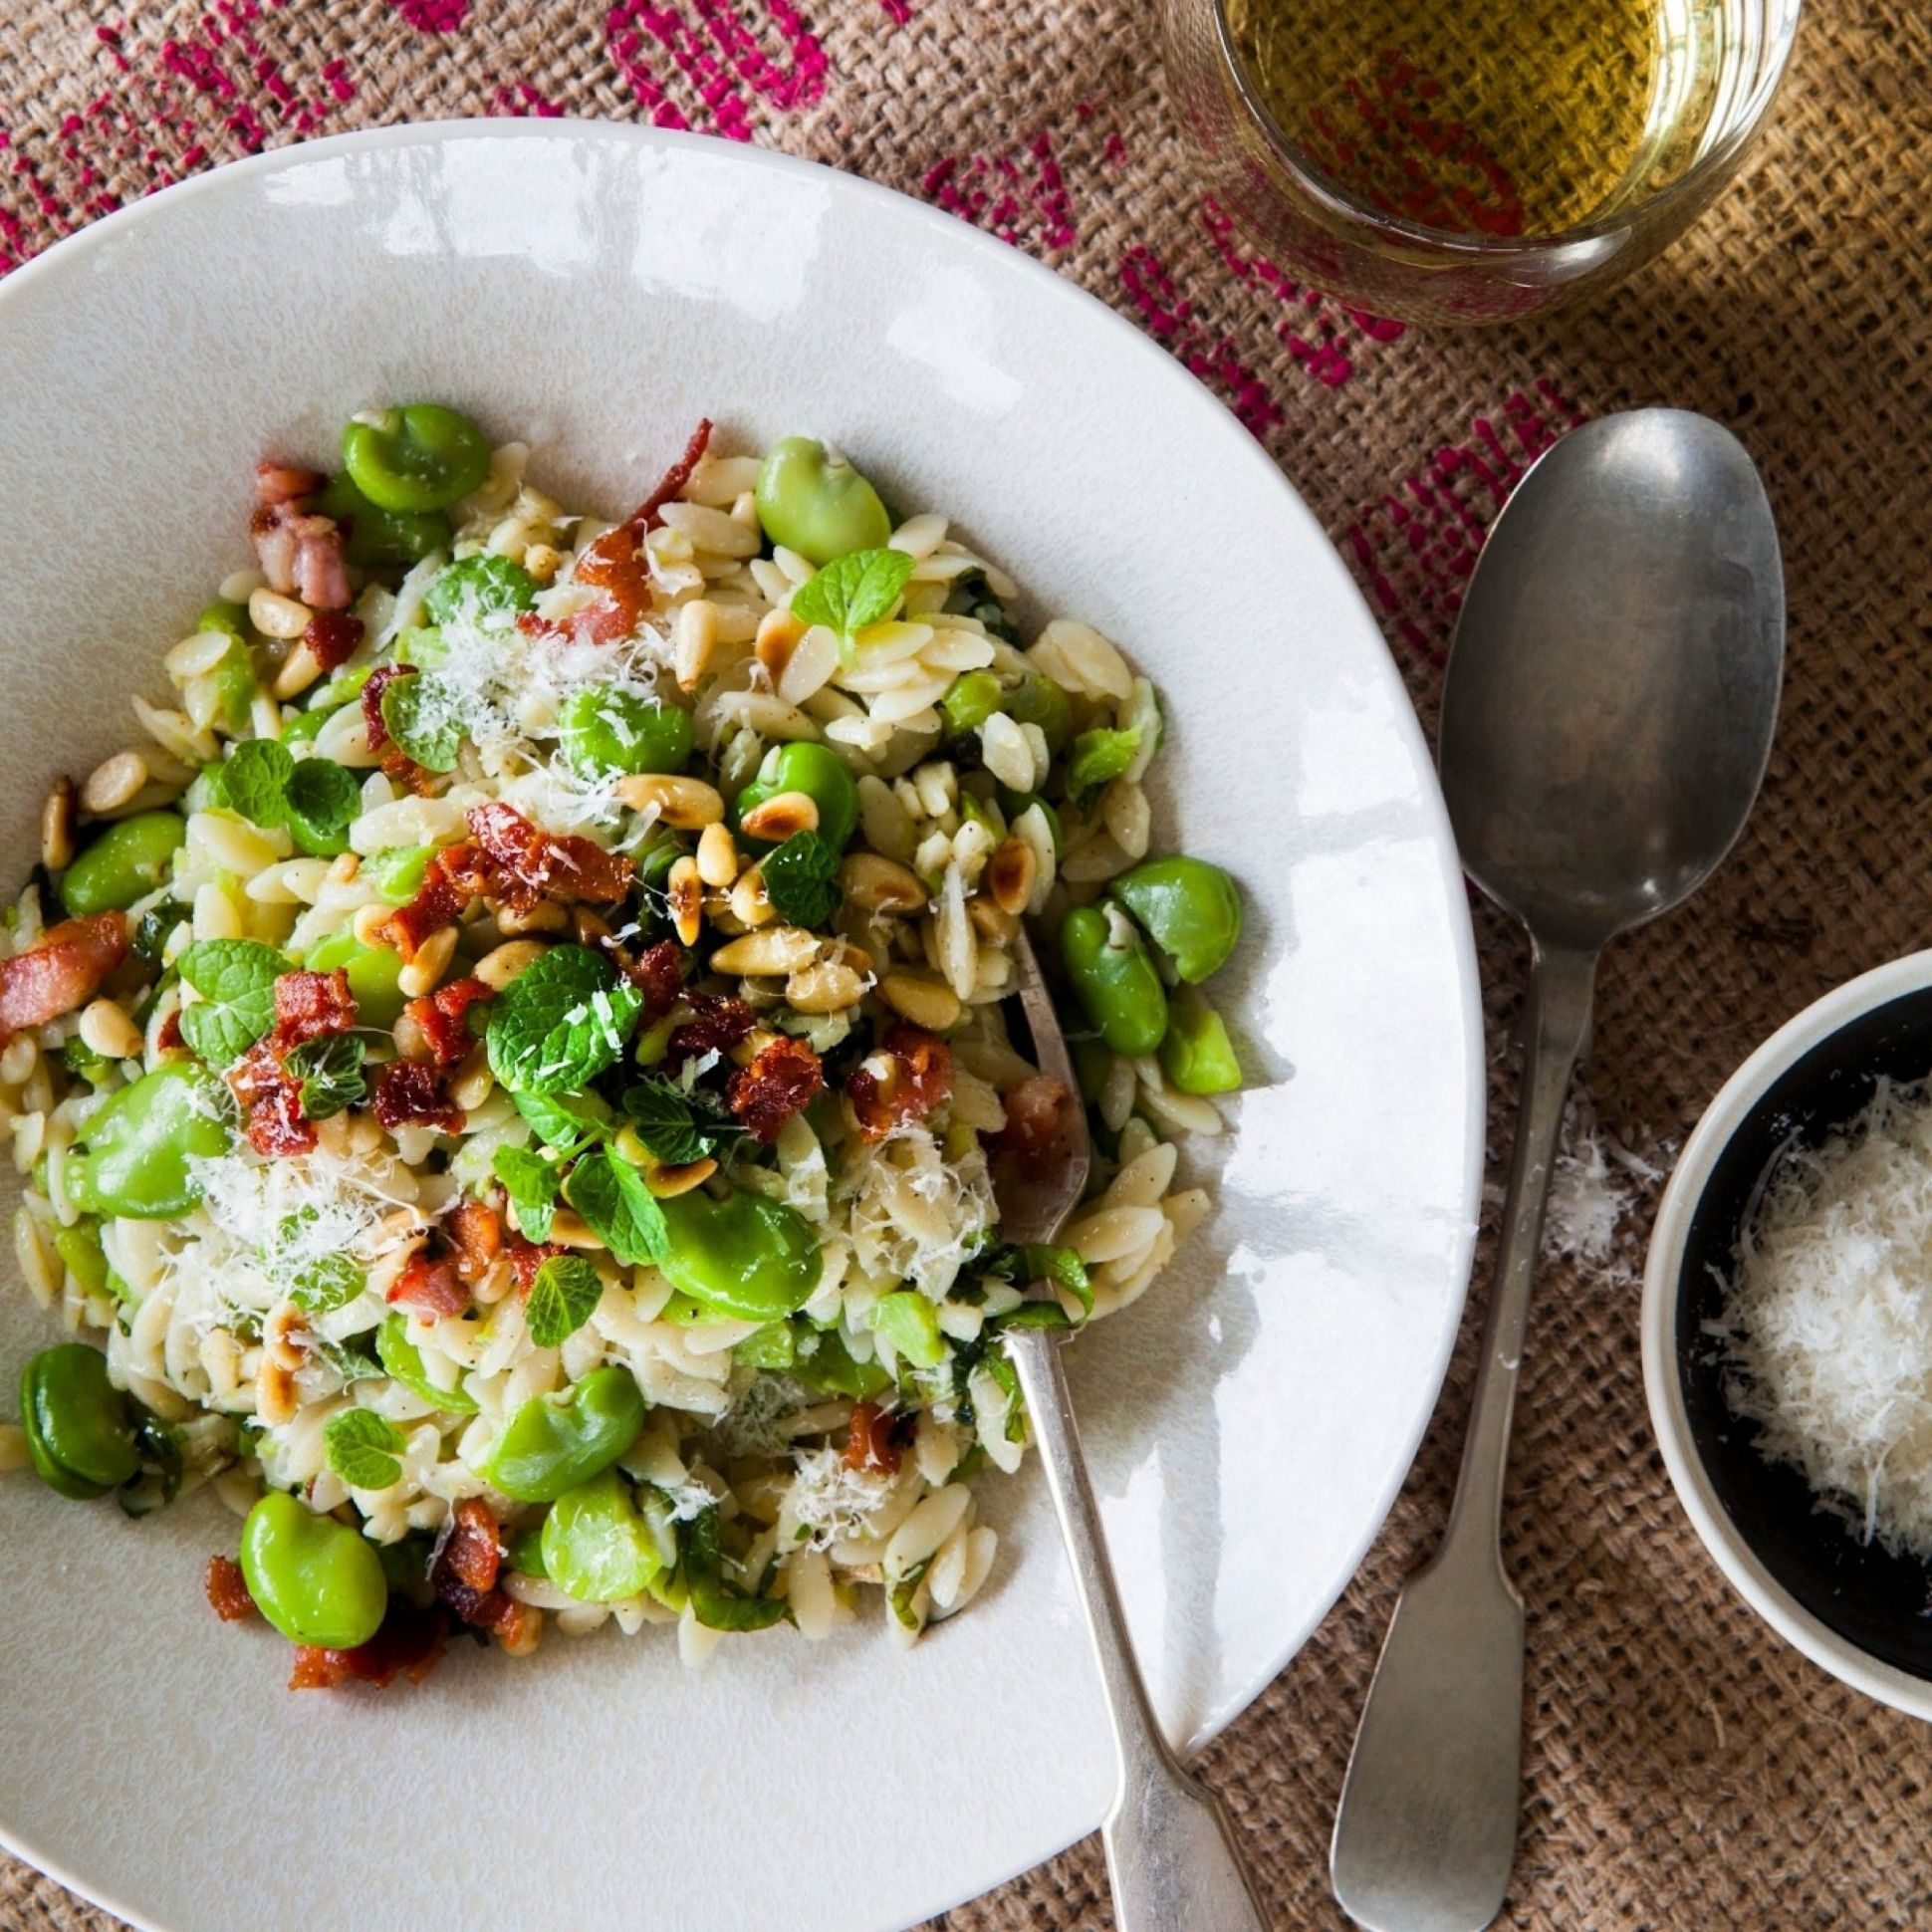 Broad Bean and Mint Risoni with Crispy Bacon - Salad Recipes Nadia Lim